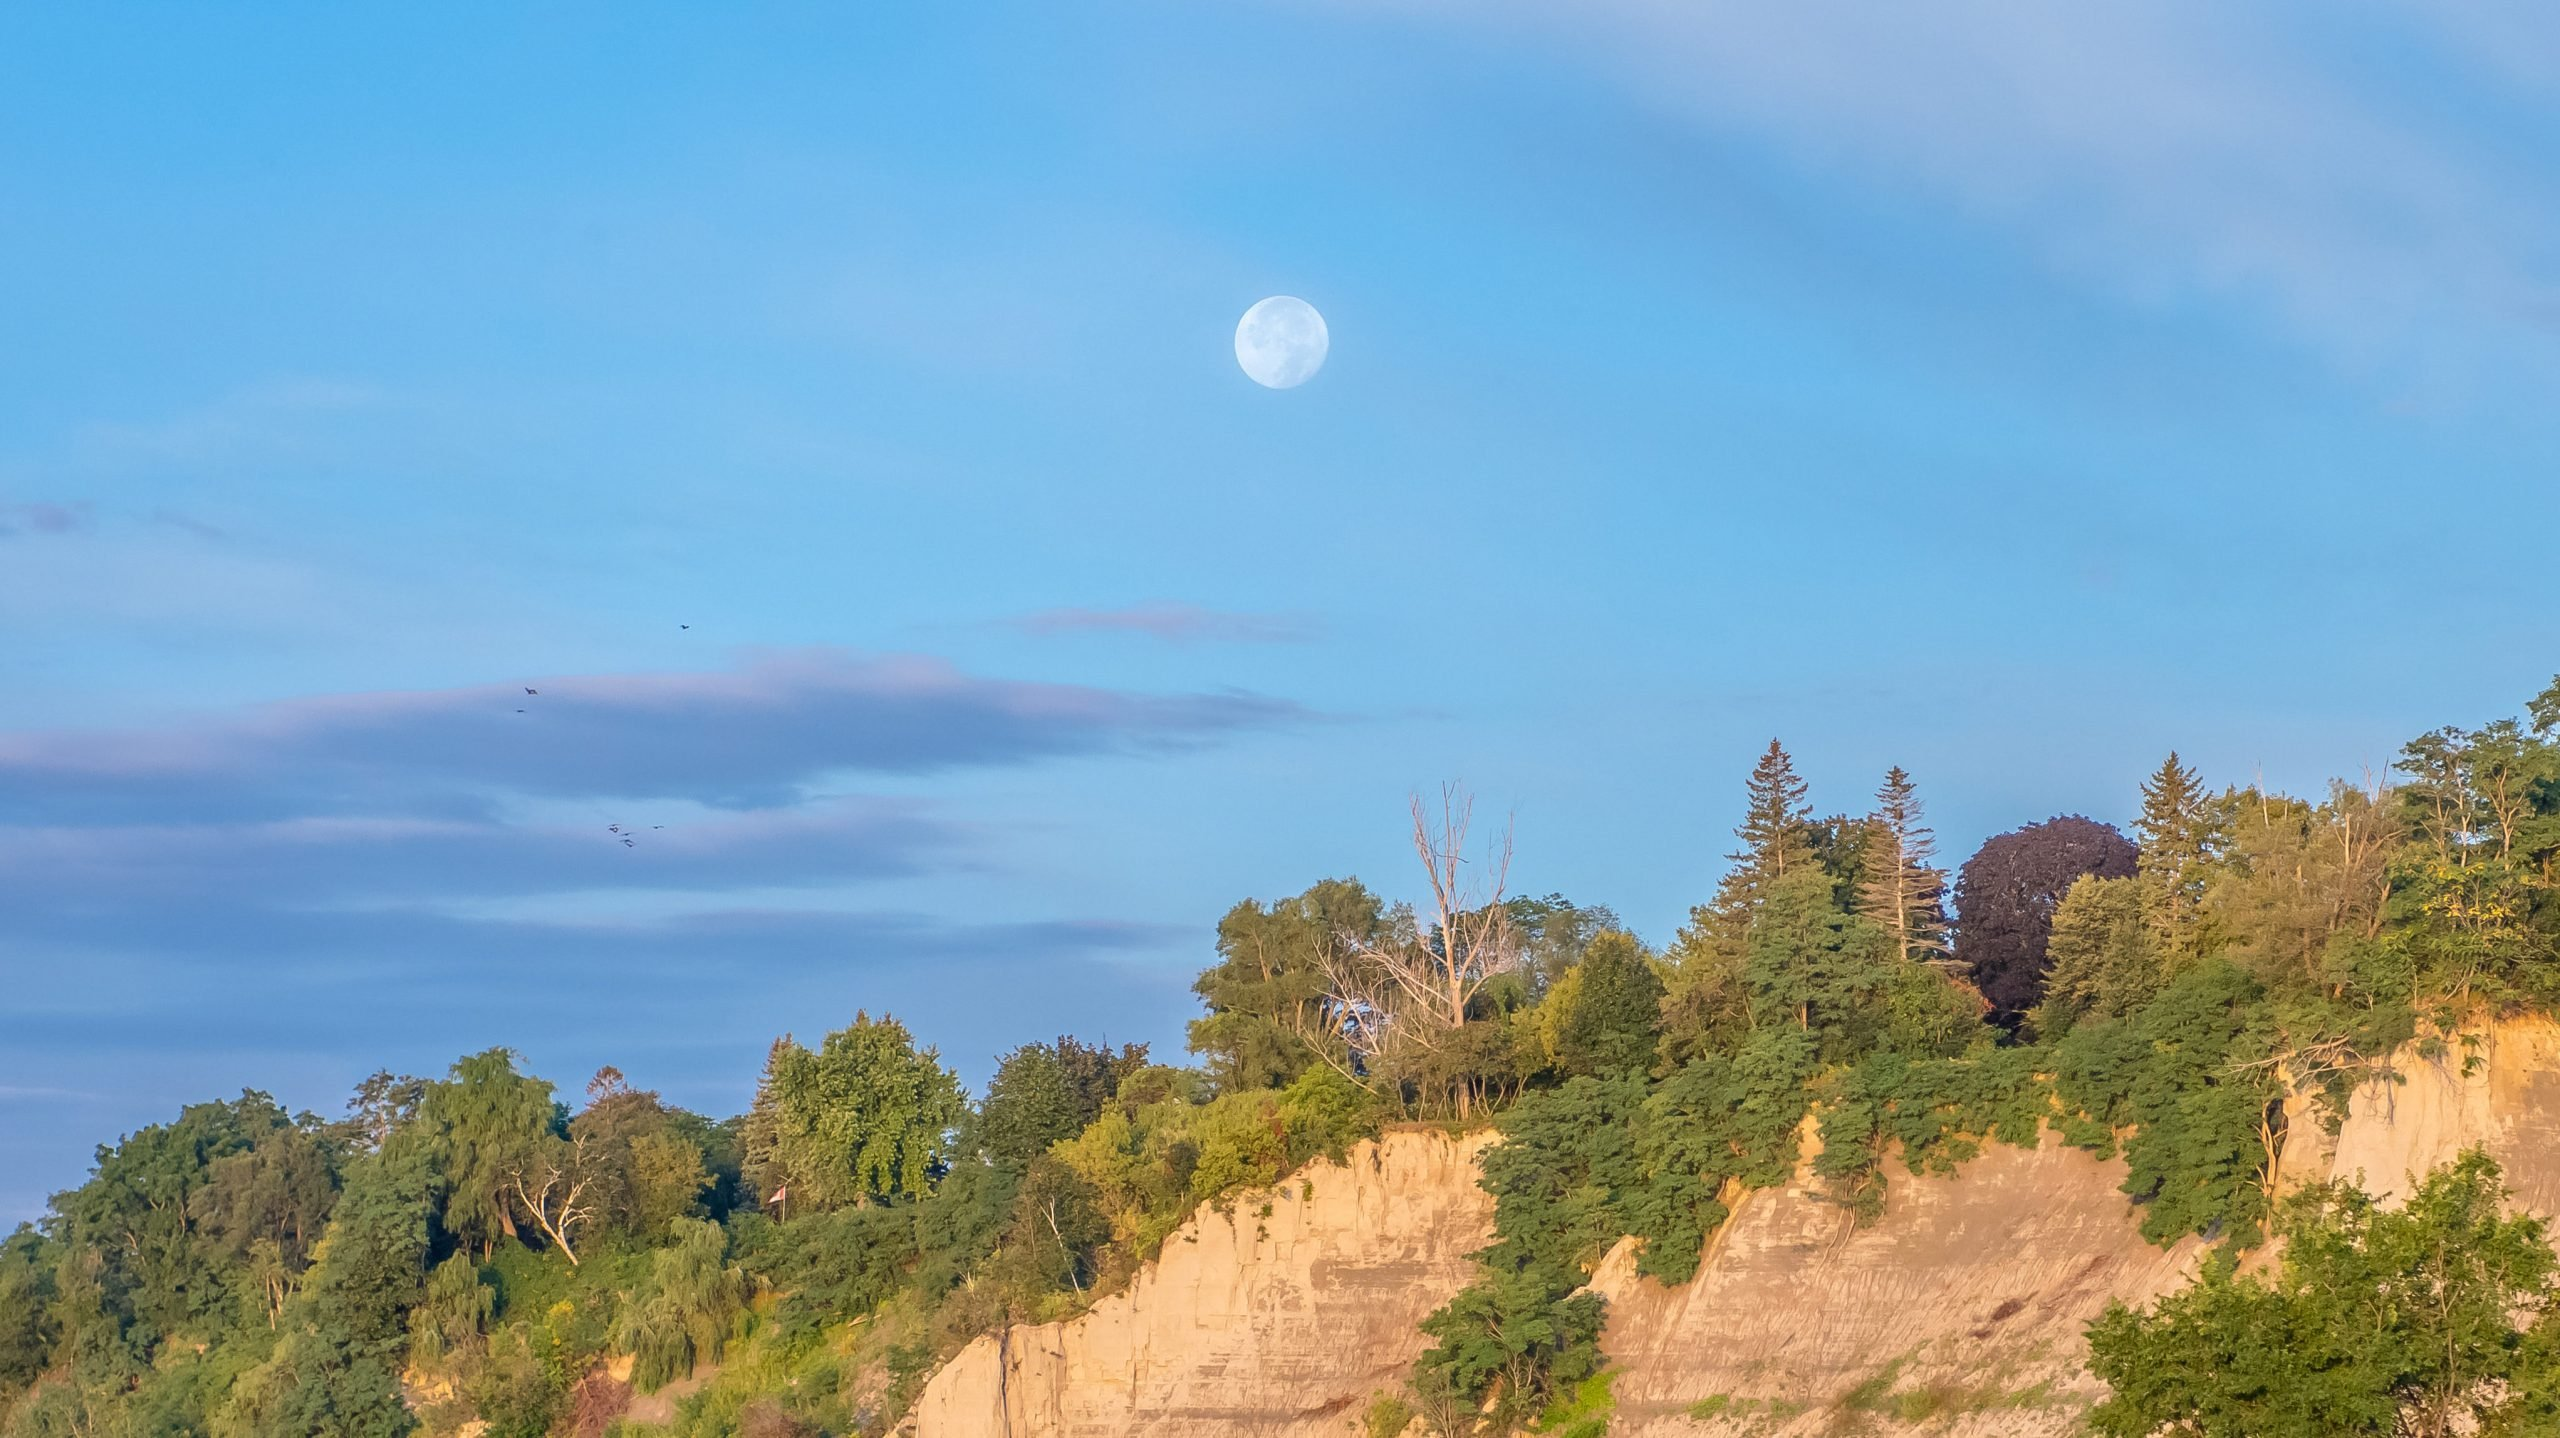 The sand cliffs, beach, green trees and vegetation of the Scarborough Bluffs escarpment on lake Ontario in Toronto, on a sunny summer fall autumn day, with clouds and bright moon in the blue sky.